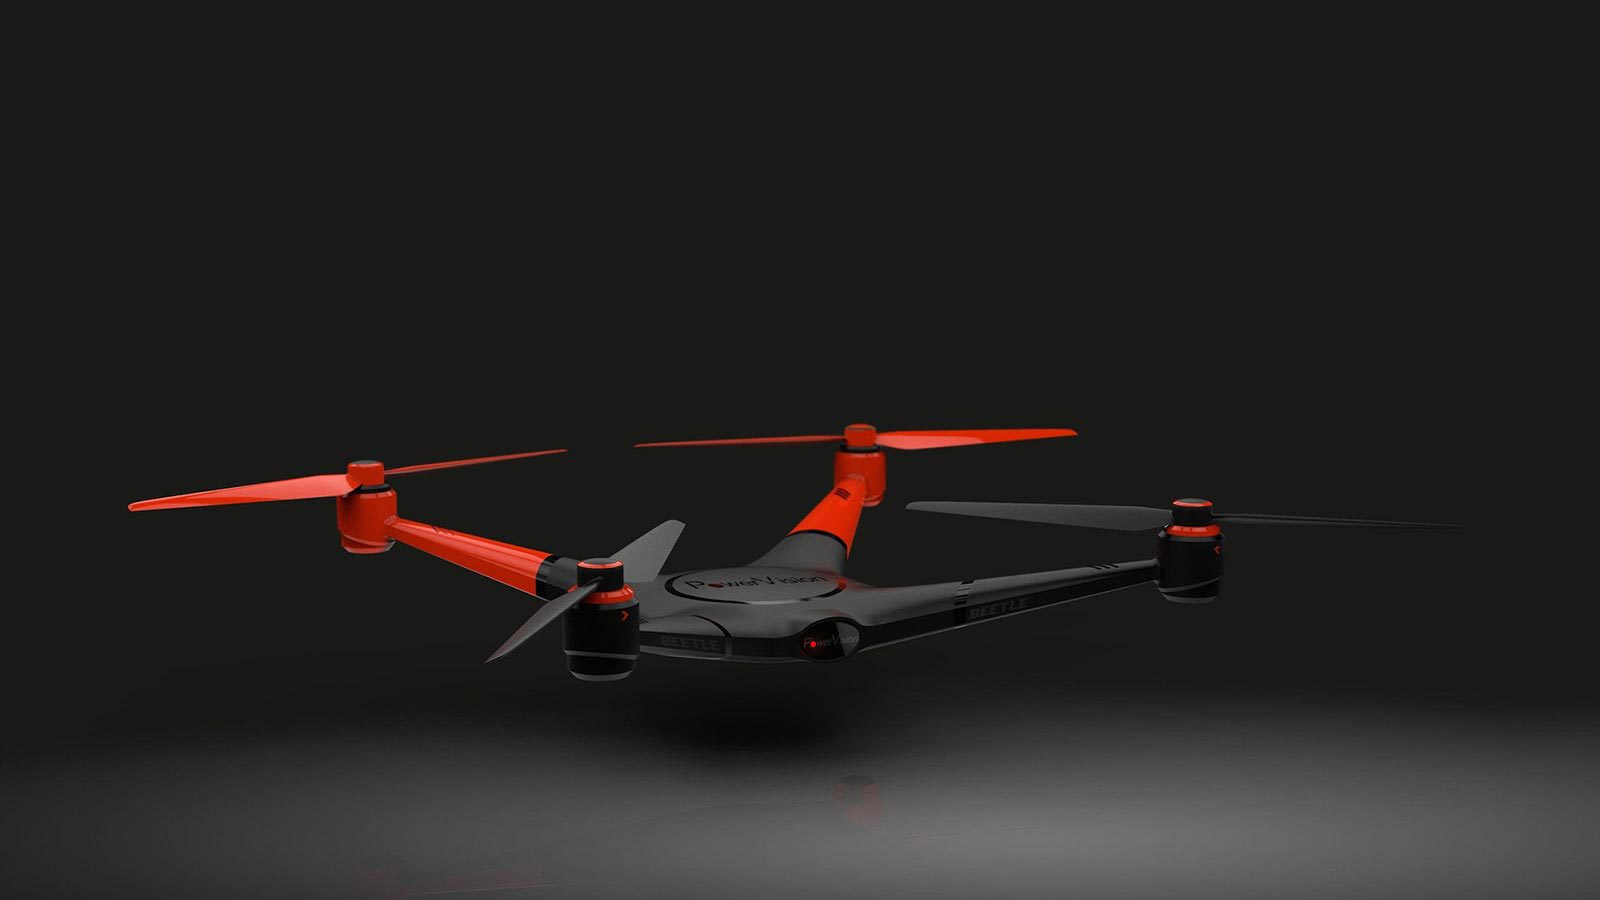 Red and black drone flying over black background.